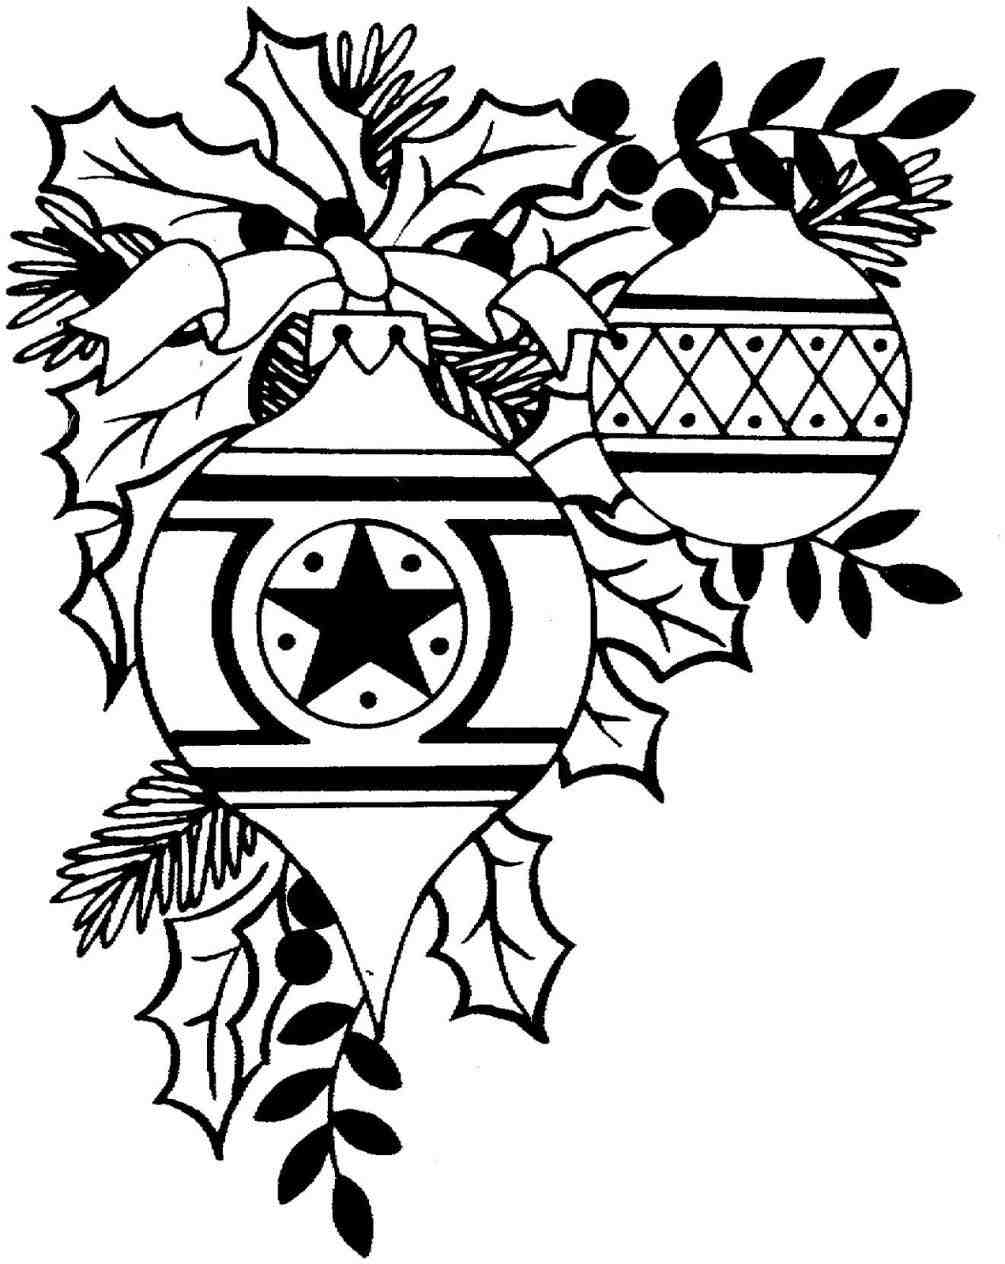 1005x1264 Girly Girly Religious Merry Christmas Clip Art Black And White